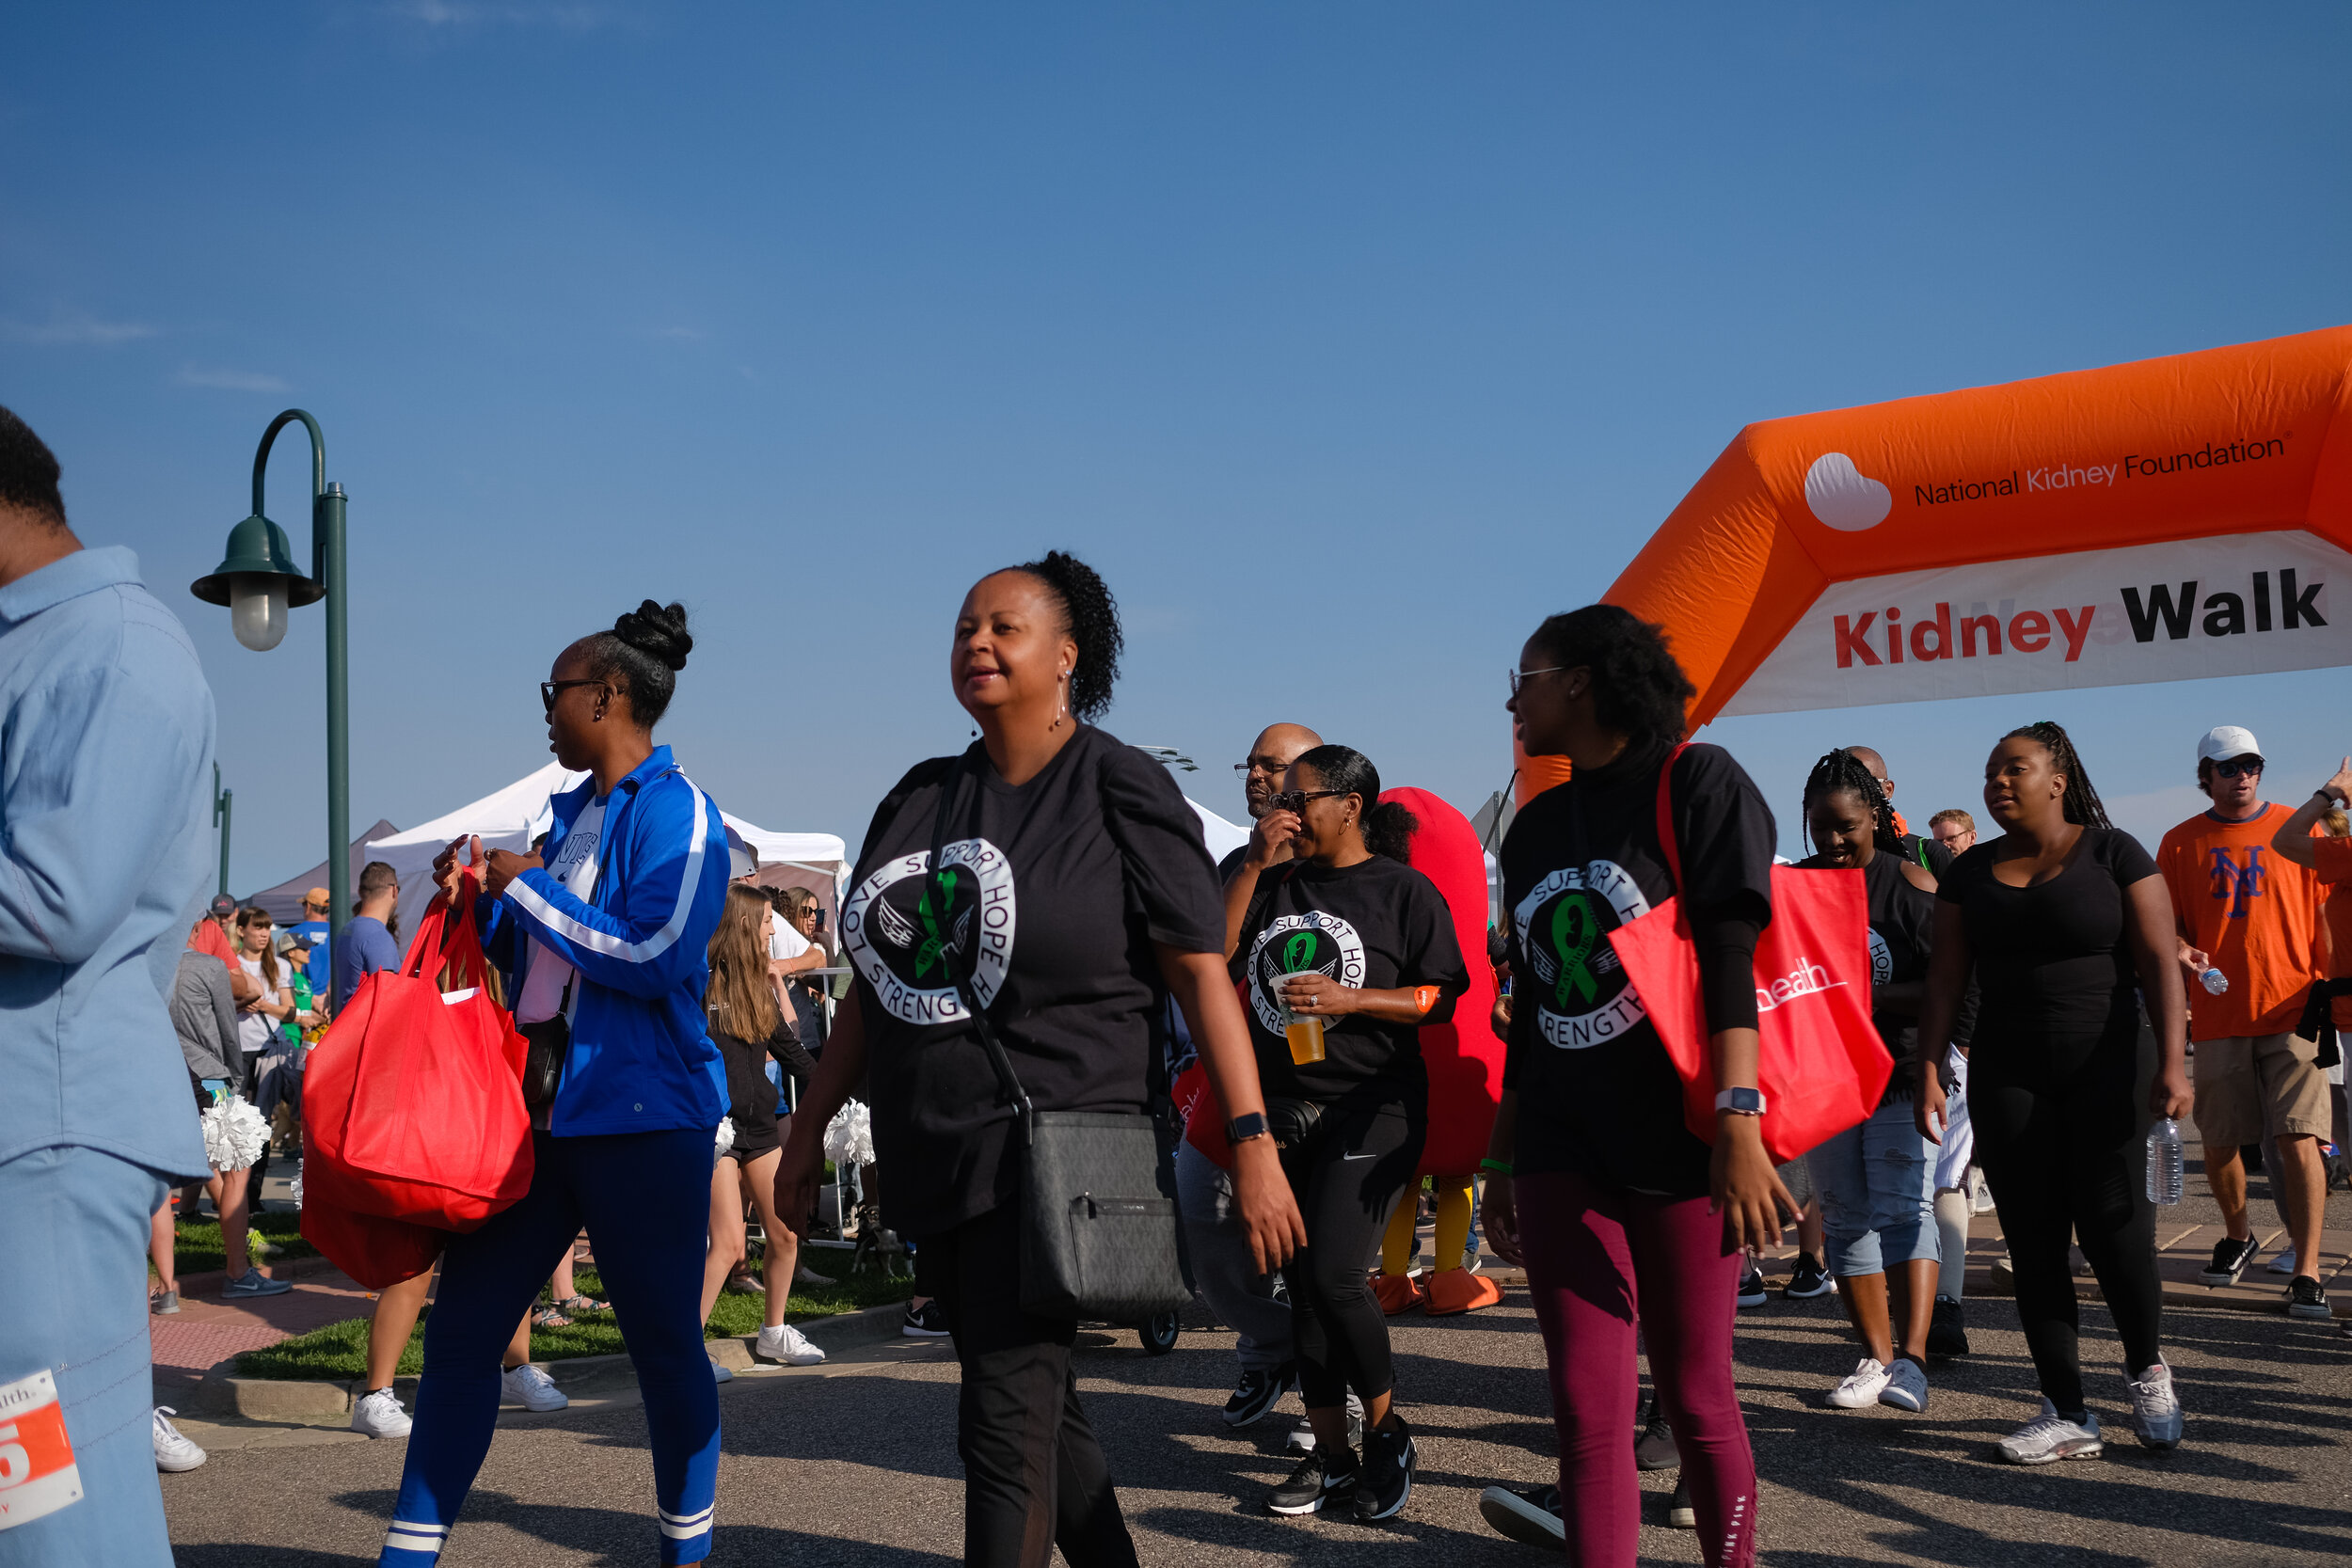 Denver Kidney Walk-74.jpg